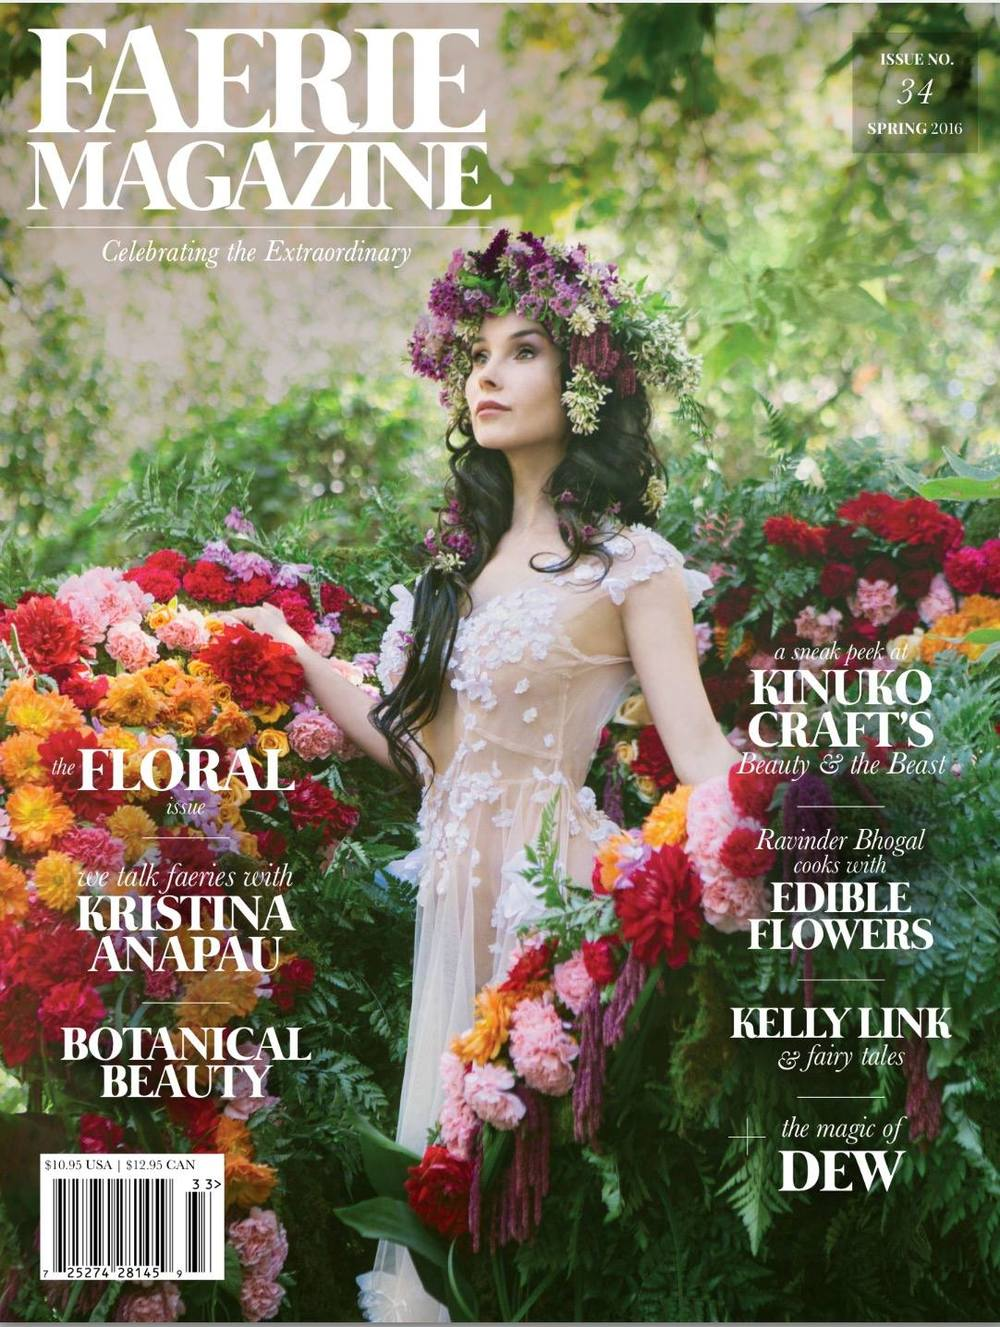 Kristina Anapau on the cover of Faerie Magazine